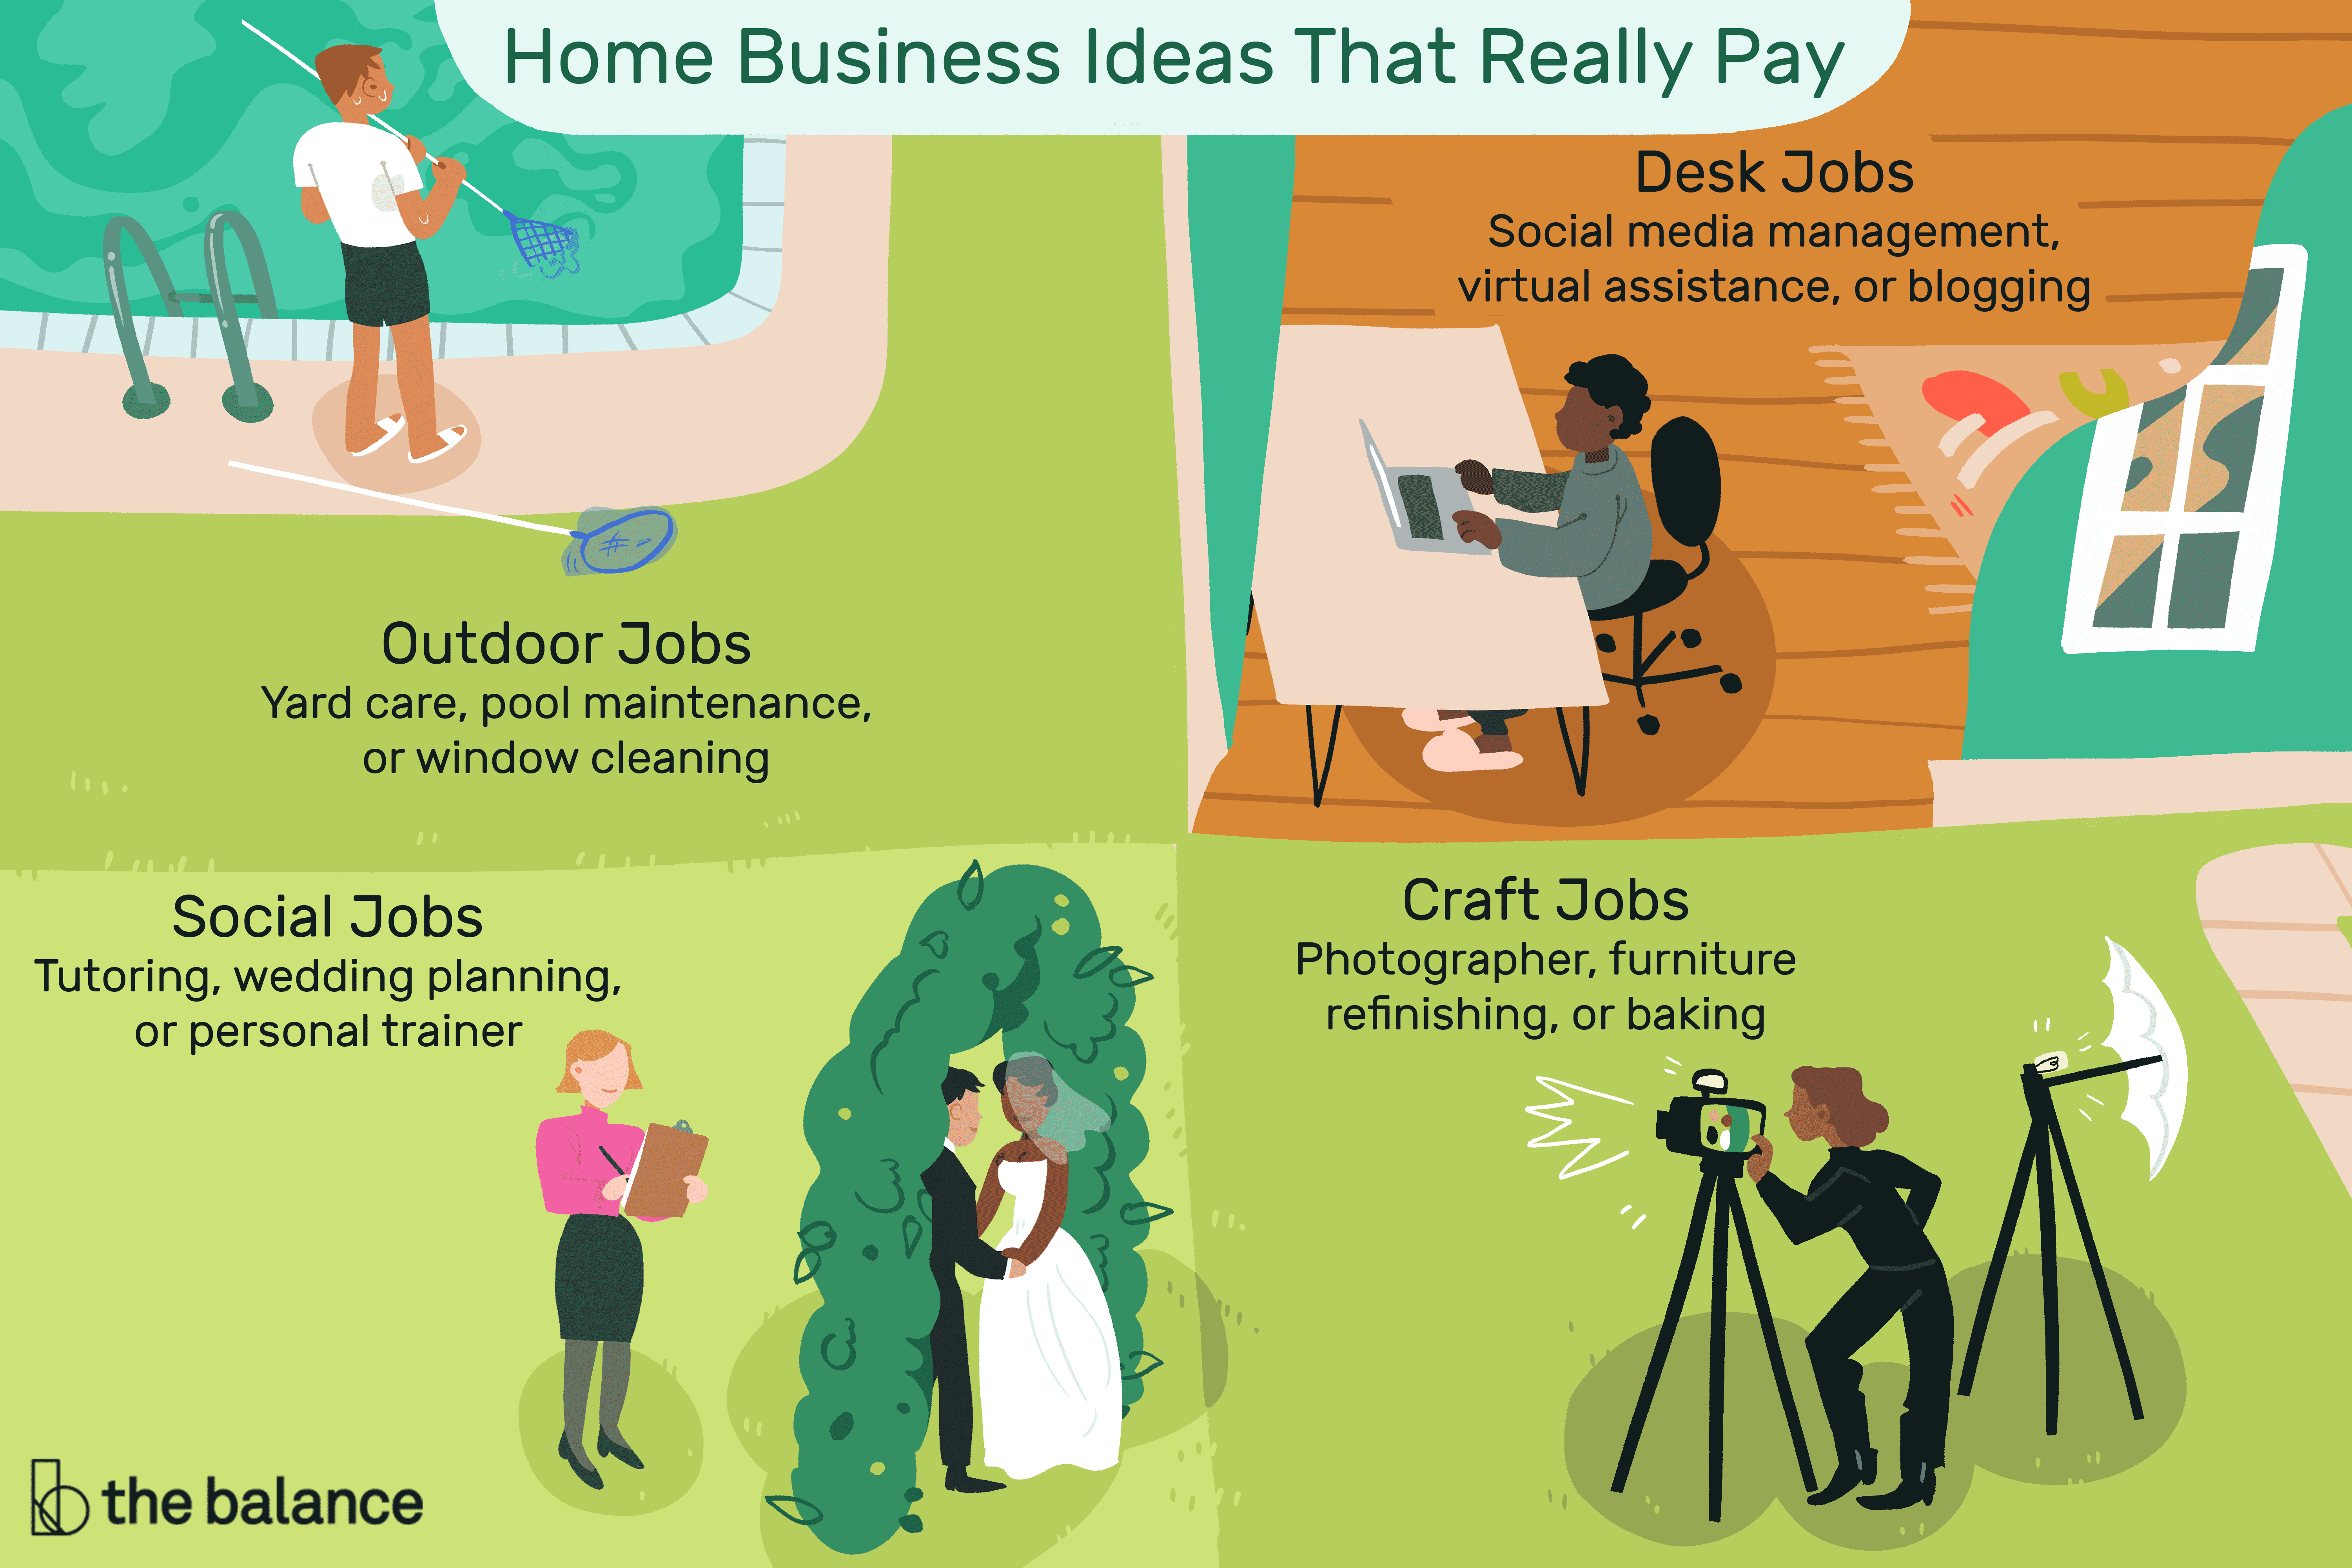 Home Business Ideas That Really Pay in Backyard Business Ideas